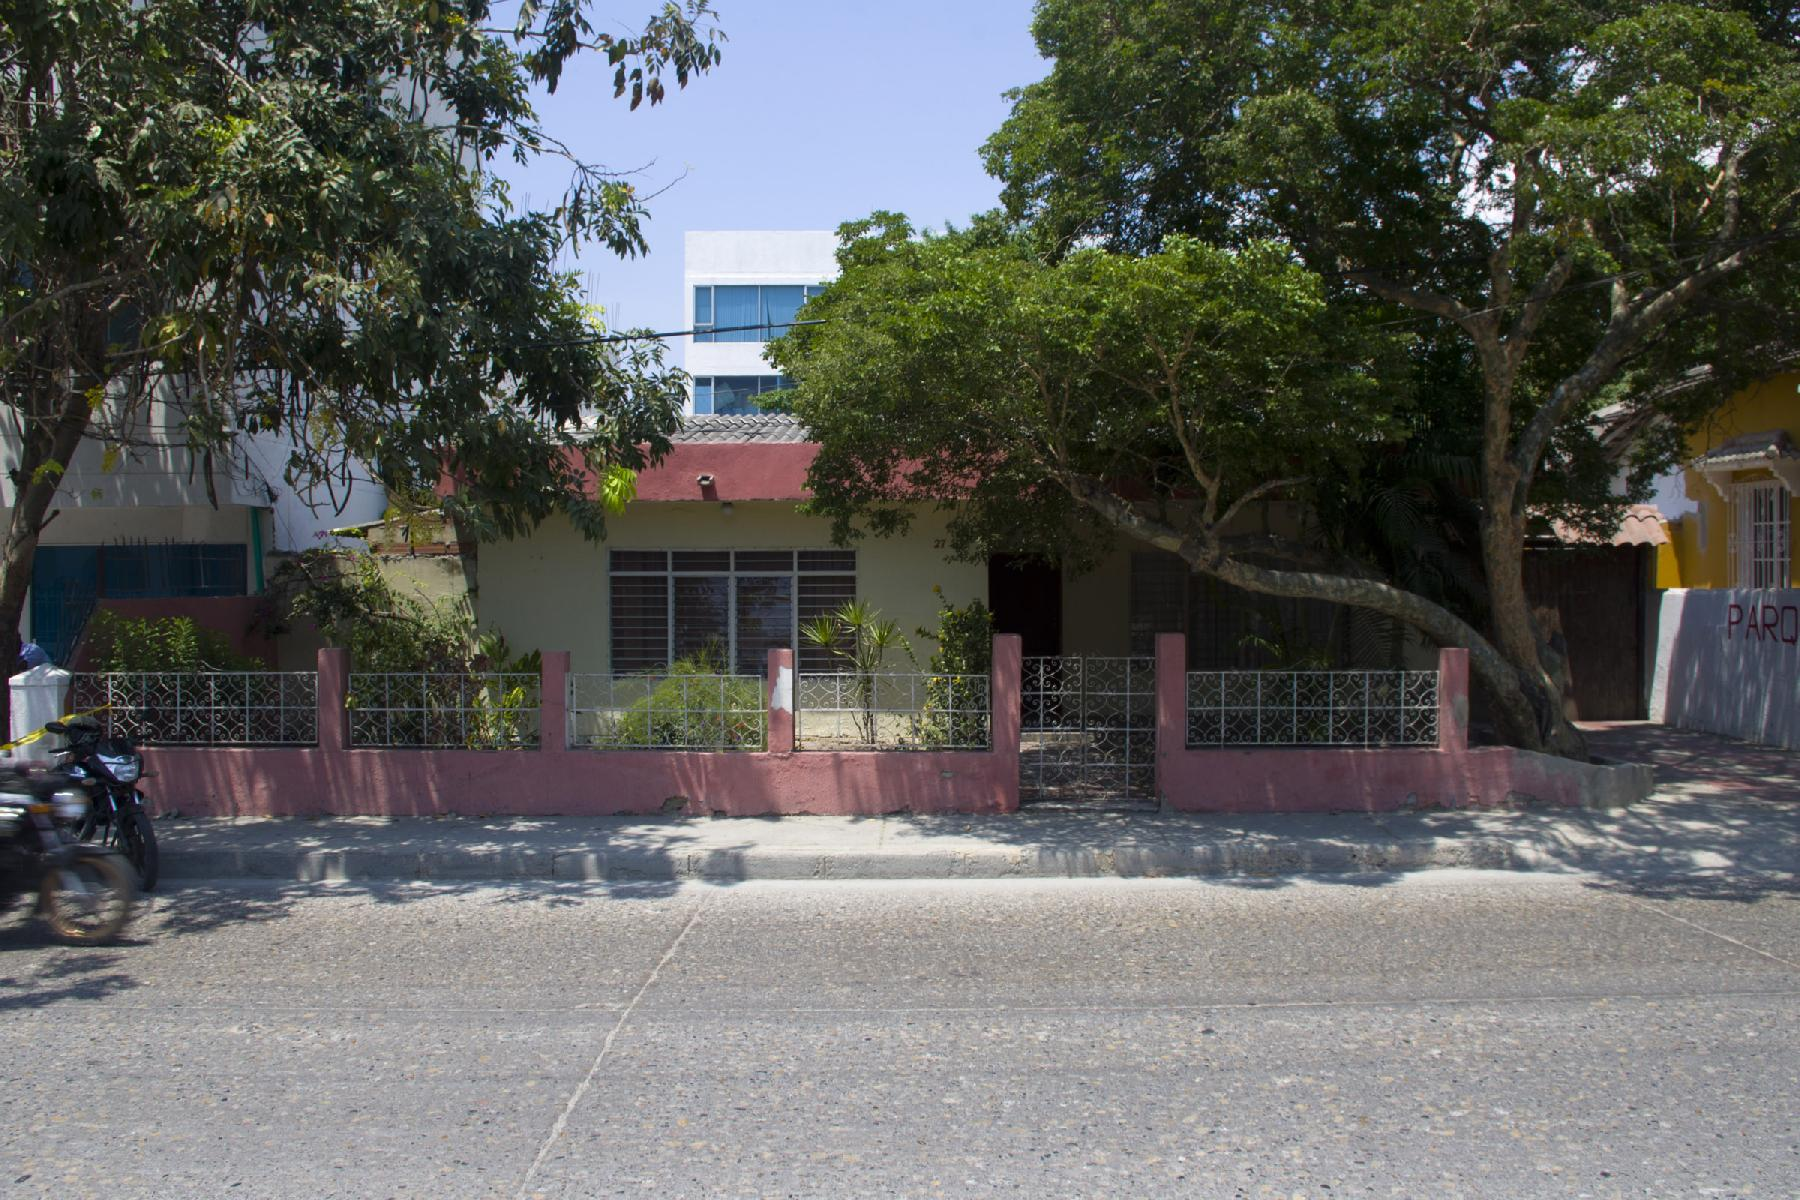 Manga - House / Commercial lot for sale